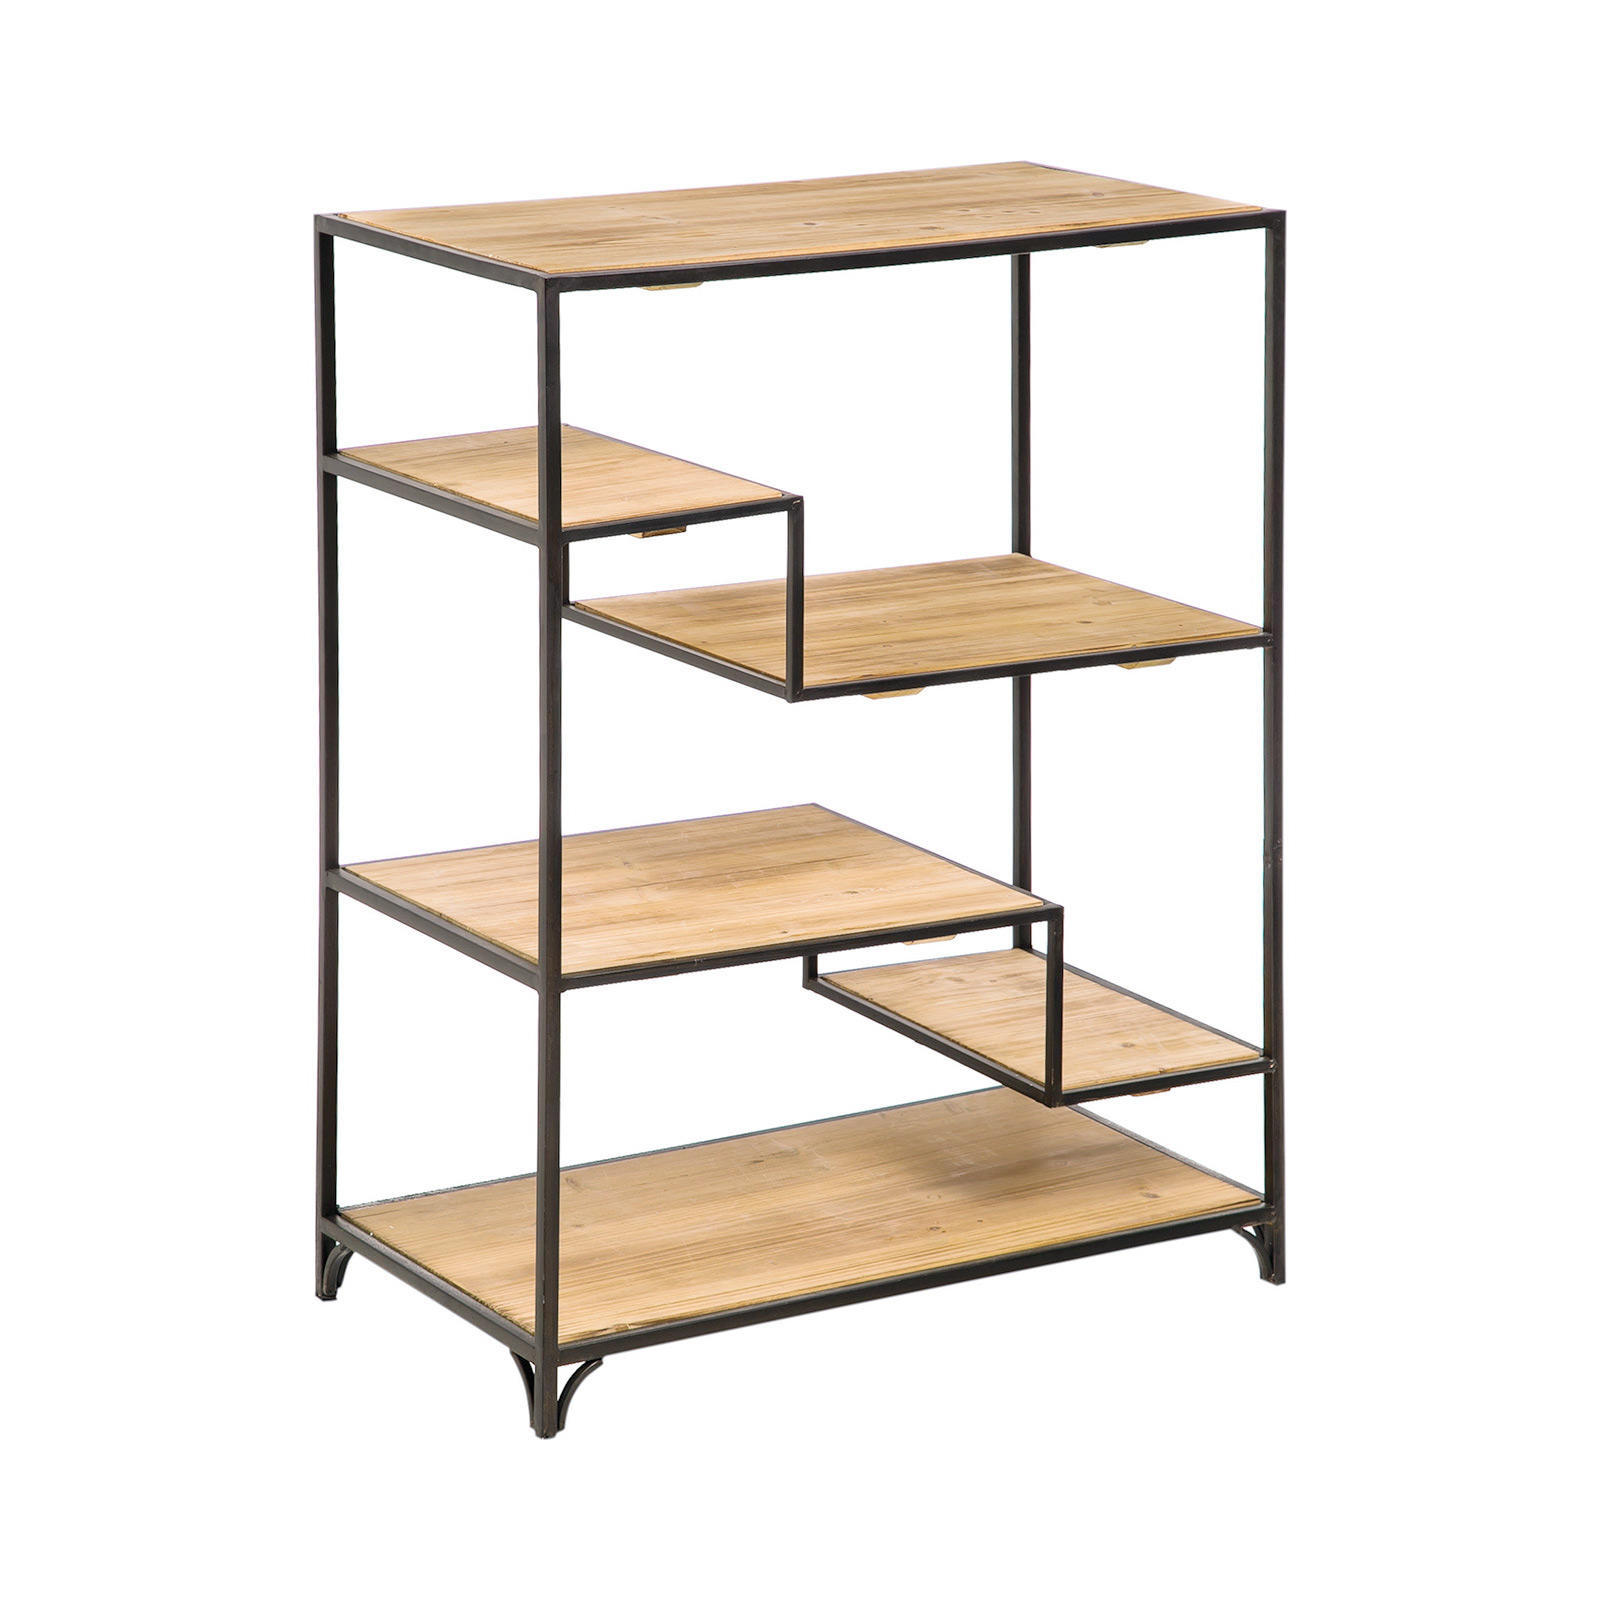 Stairs Shelves Coleton Staircase Display Shelf From Dot And Bo 11 Corpus